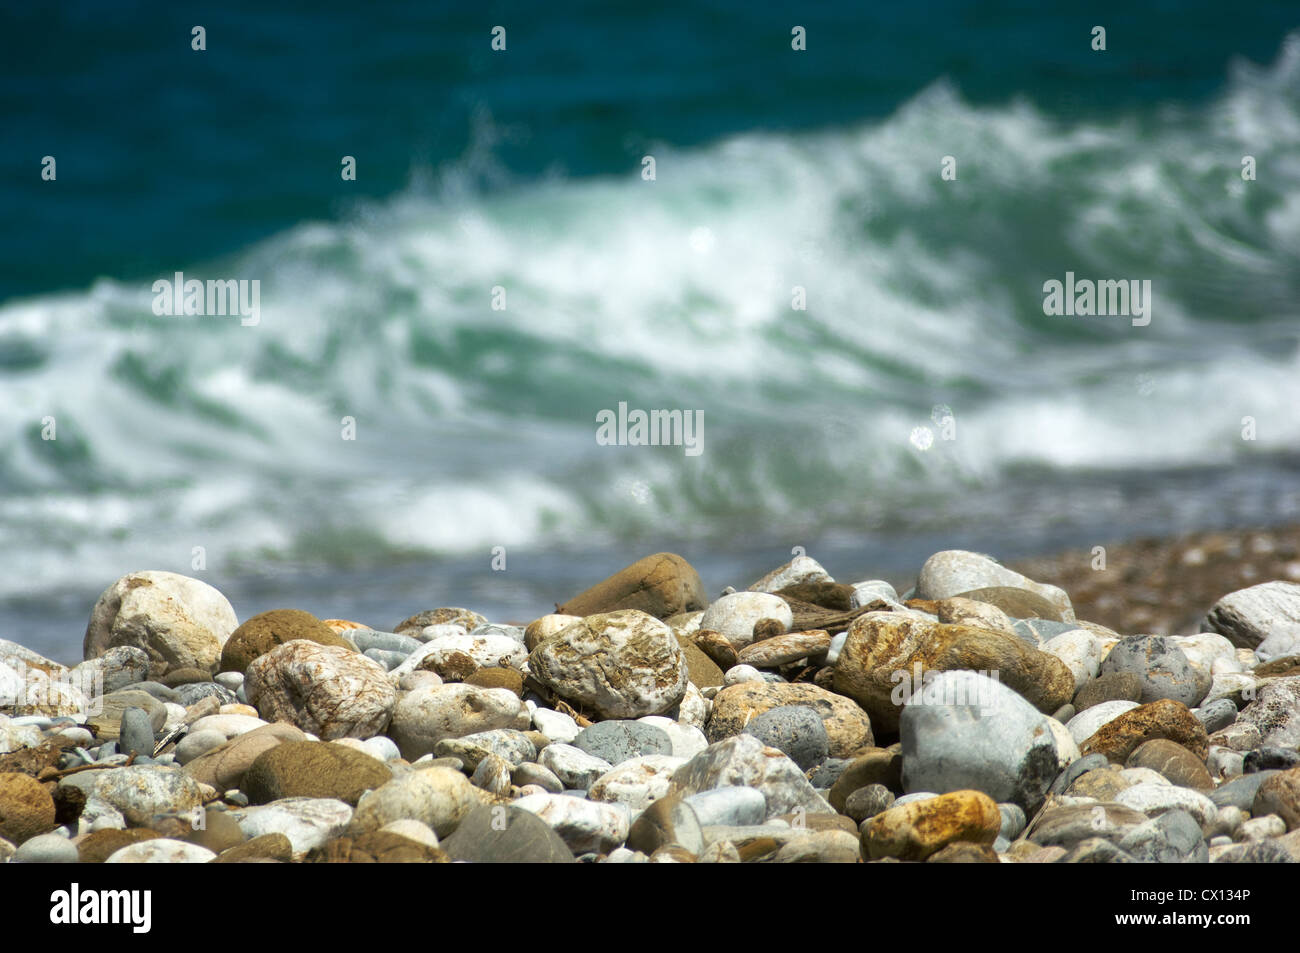 Close-up of a pebble beach with waves in the background Stock Photo